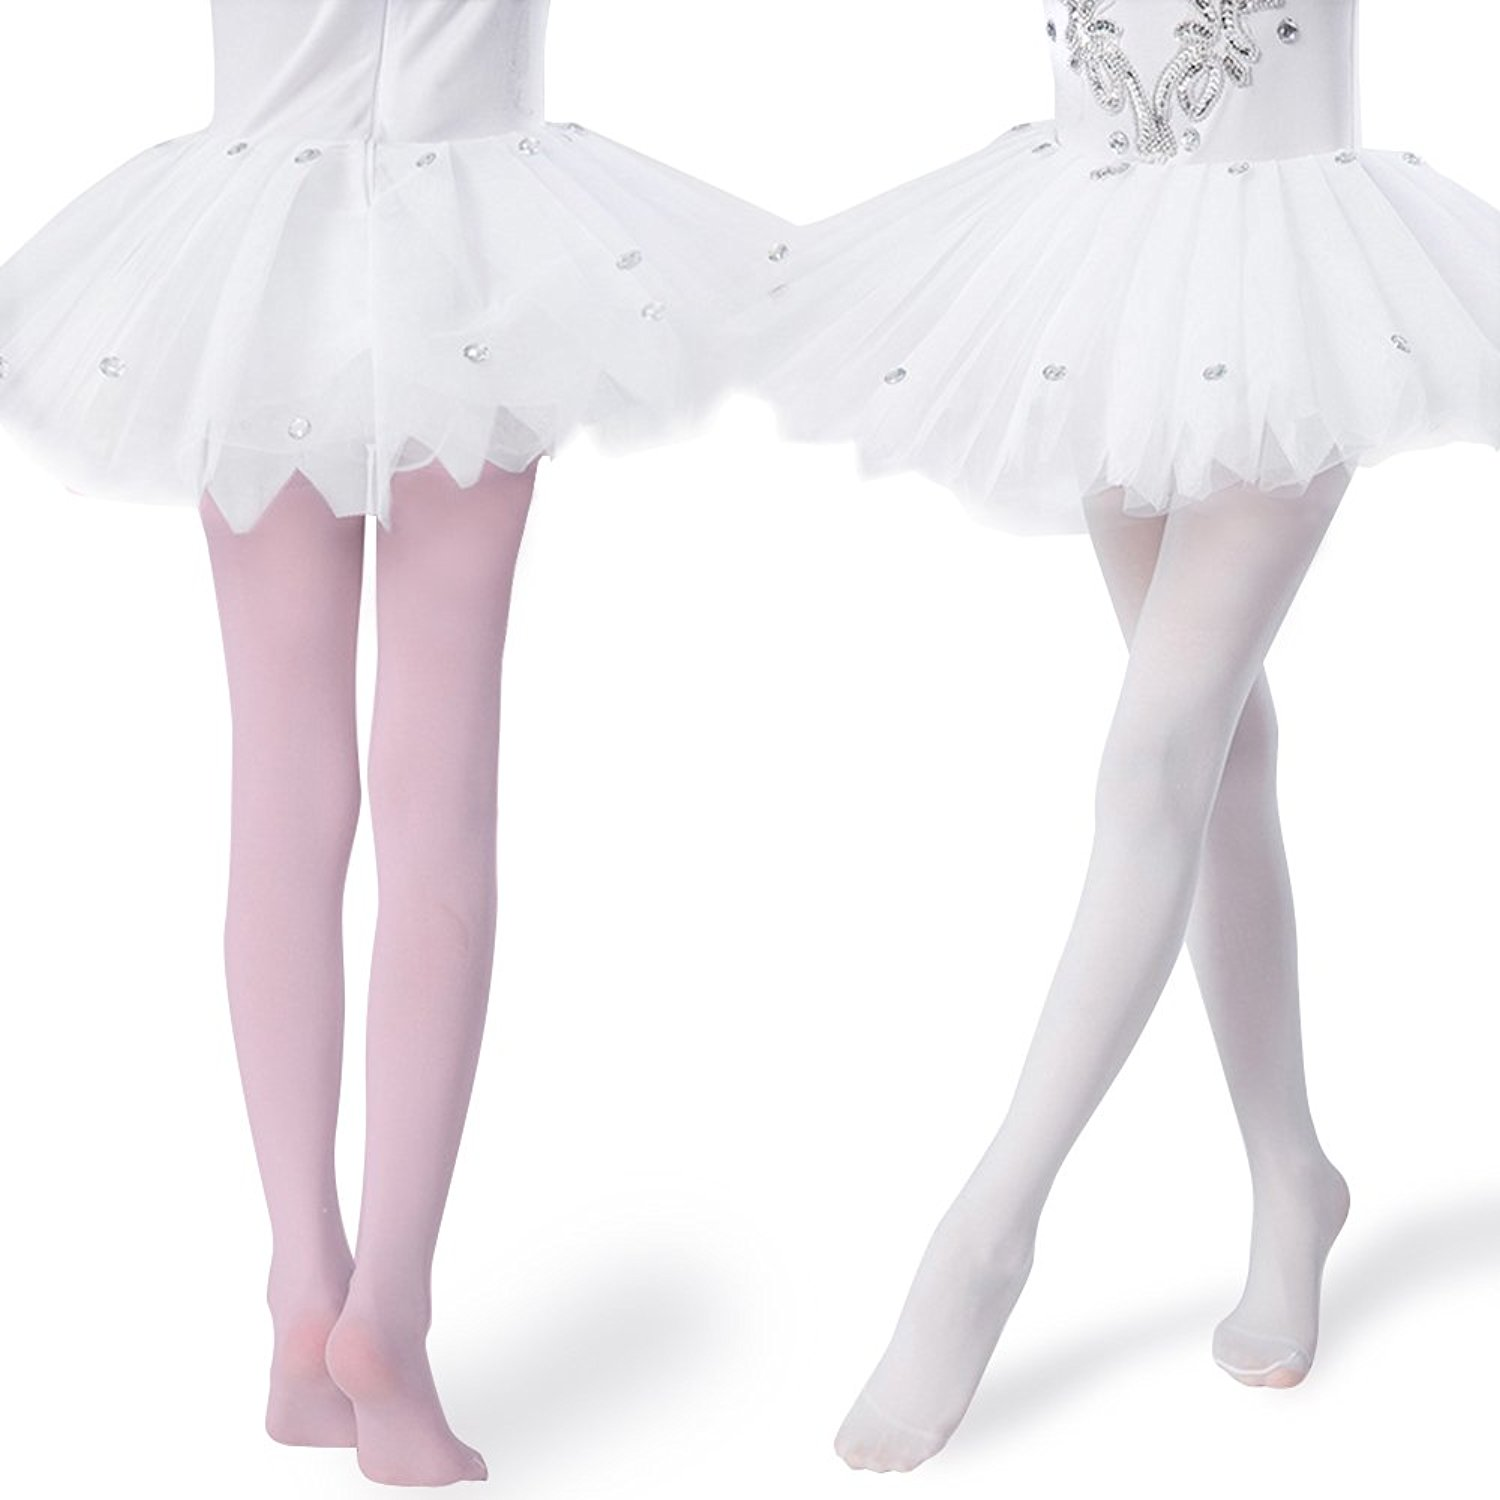 e84ef462b Get Quotations · Girls Tights Ultra-soft Footed Dance Sockings Ballet  Tights Kids Super Elasticity School Uniform Tights